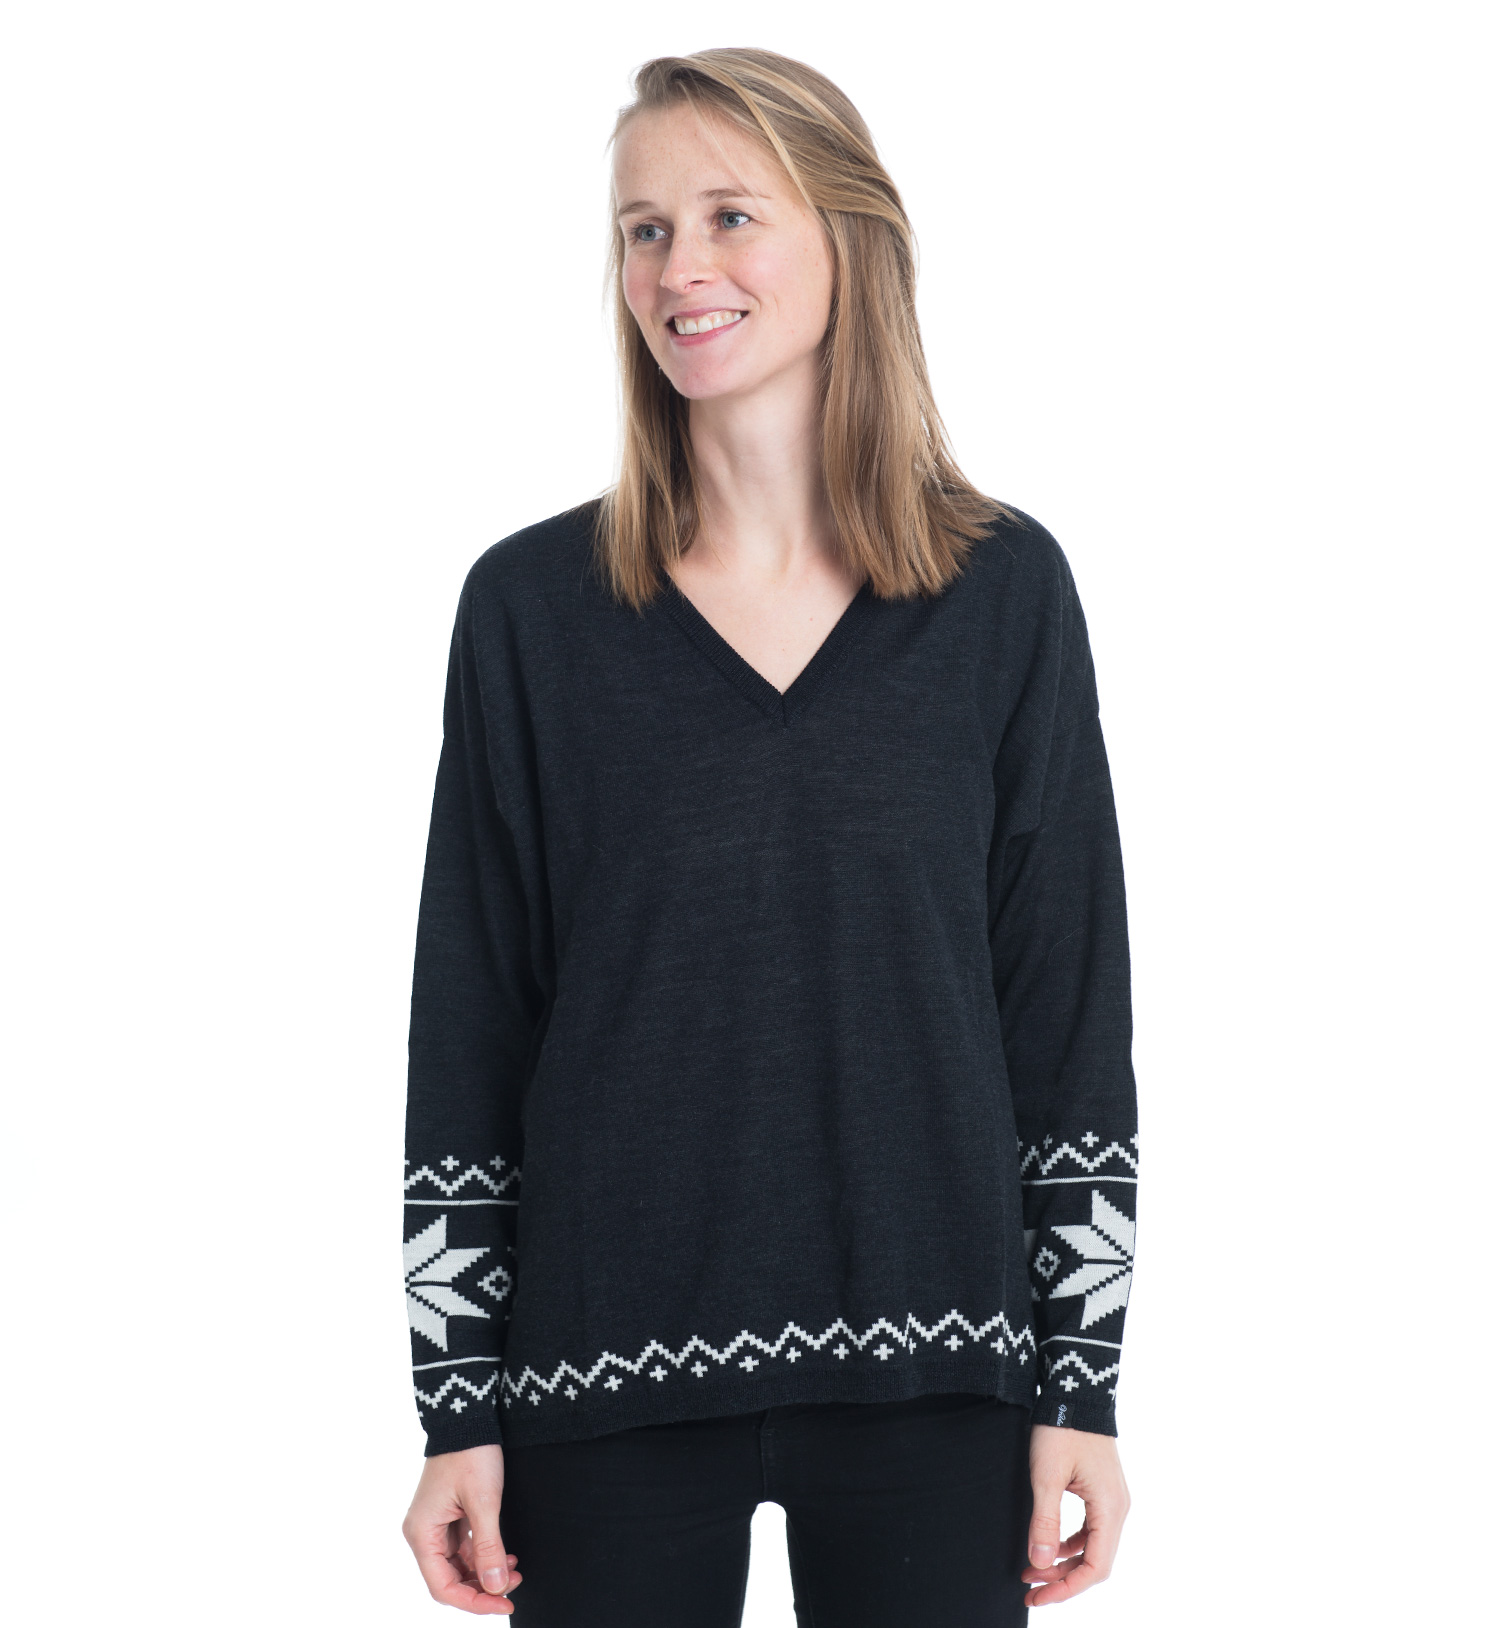 knitted sweater in black